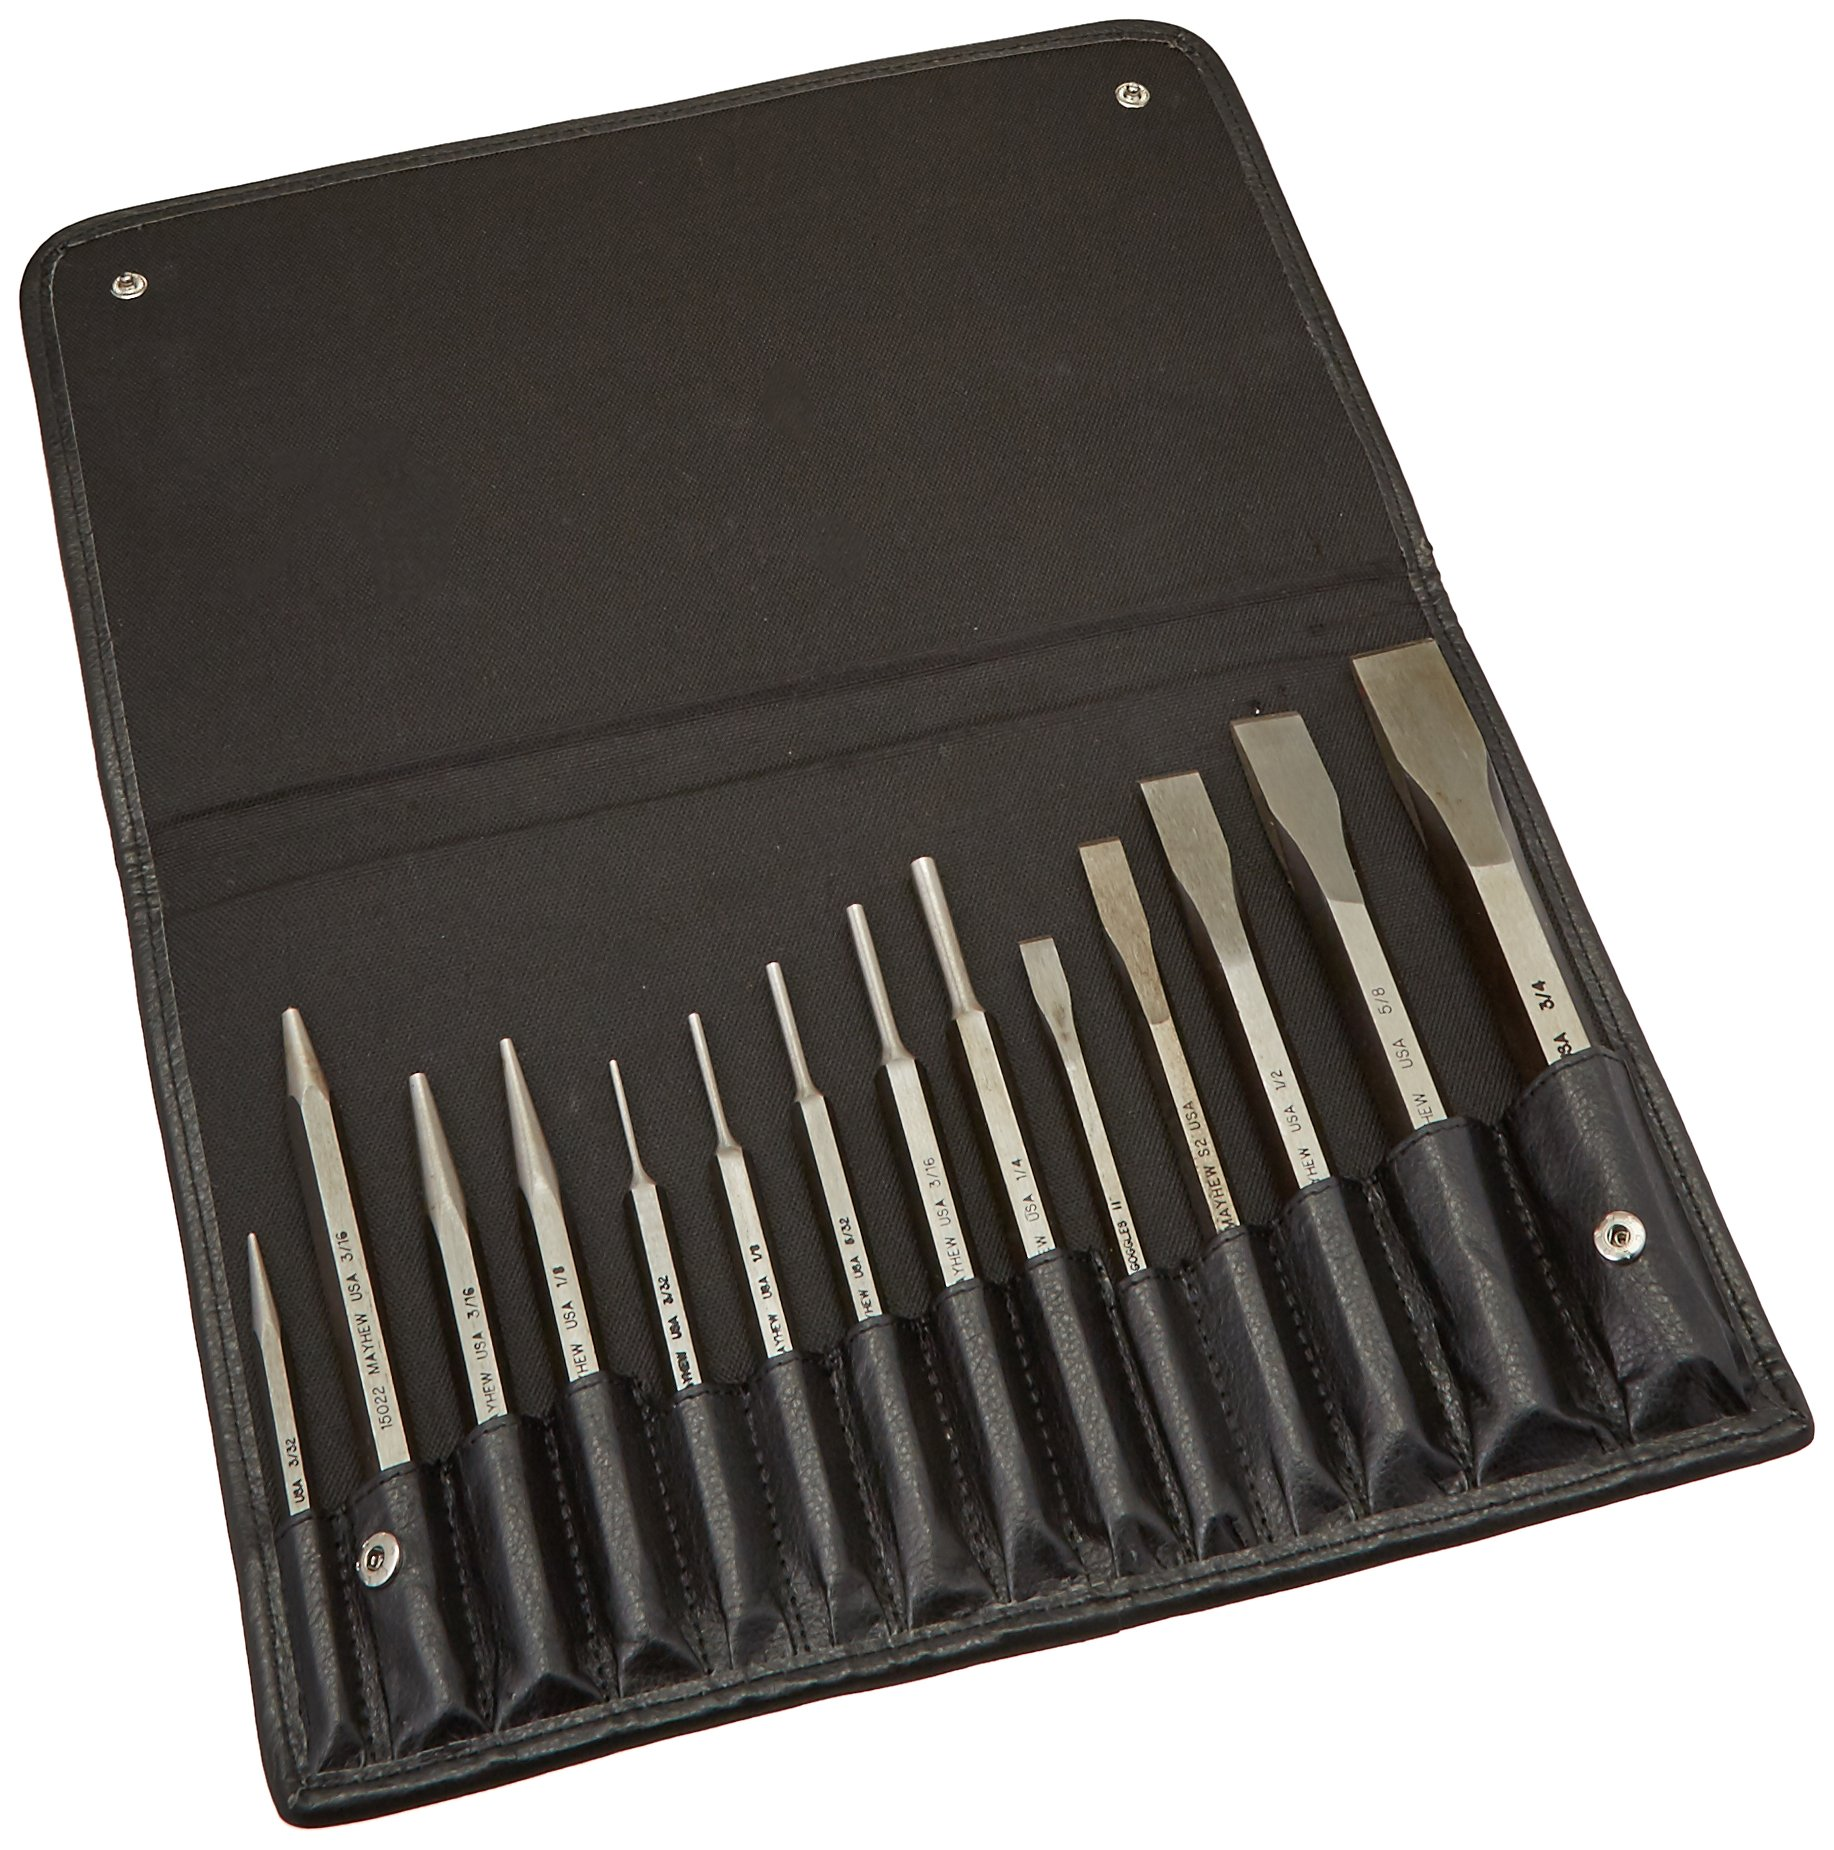 Mayhew Pro 15070 150-Line Punch and Chisel Set, 14-Piece